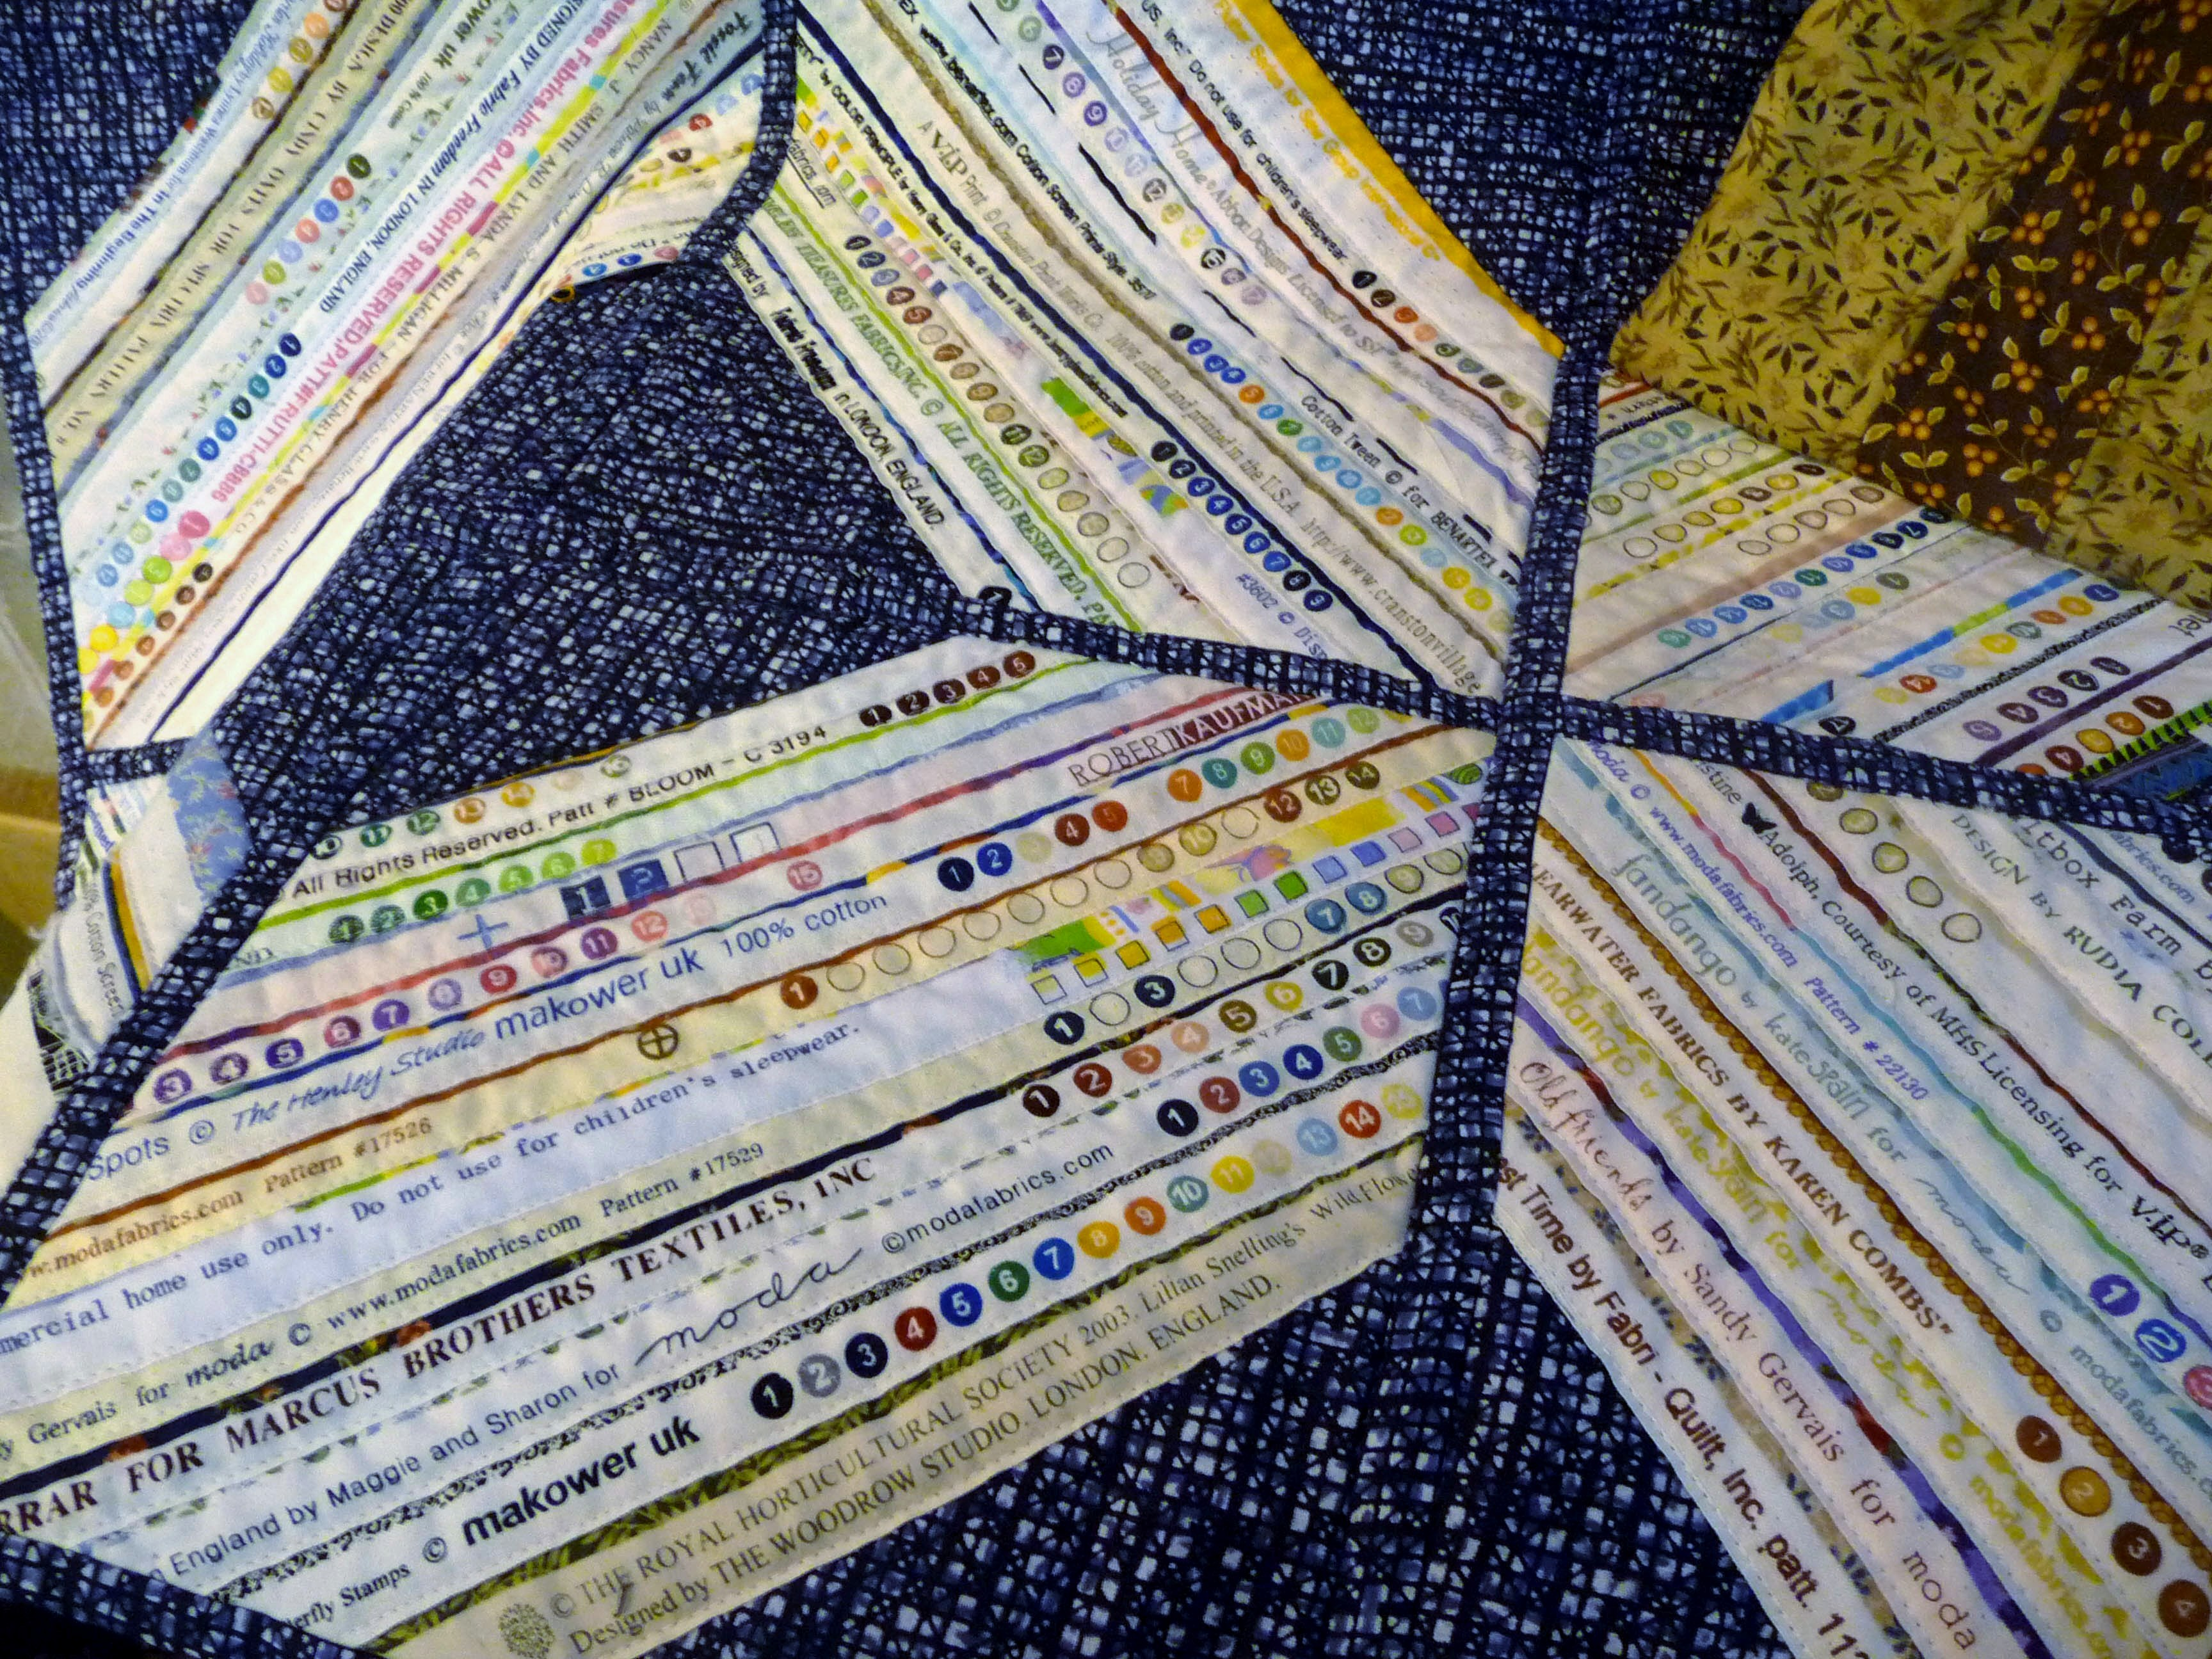 detail of quilt made by Val farmer, Stitchin' Sisters Group